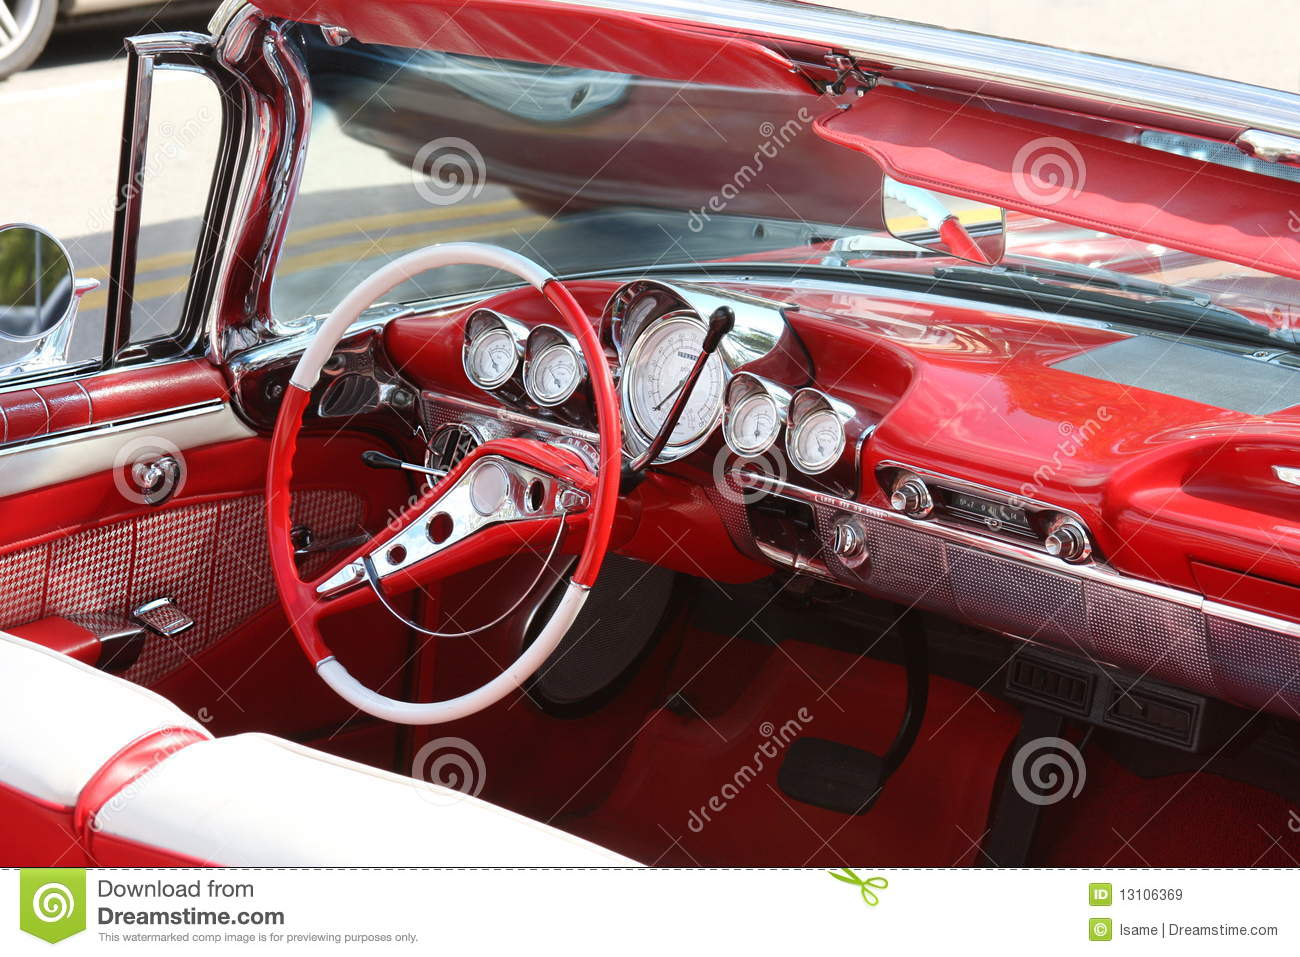 classic car interior royalty free stock images image 13106369. Black Bedroom Furniture Sets. Home Design Ideas